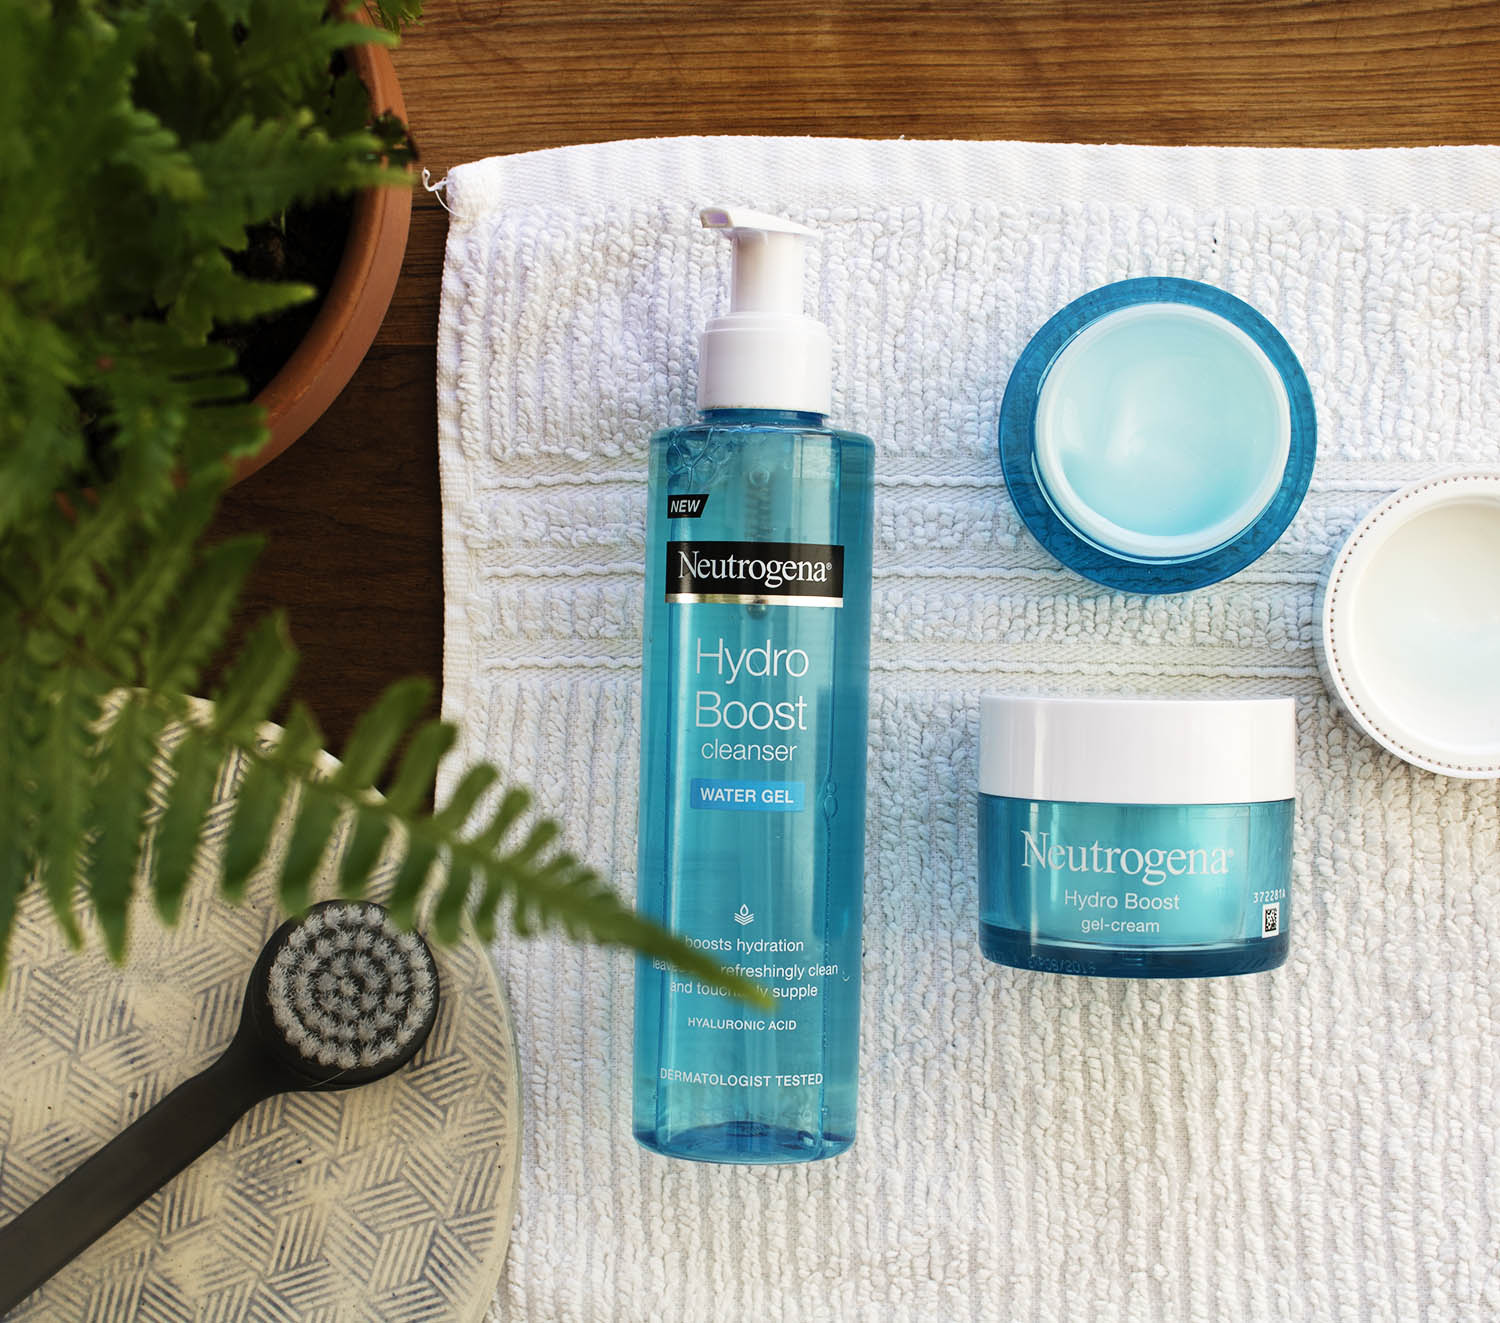 About Oily Skin, Hydration & Hyaluronic Acid | 9Lives